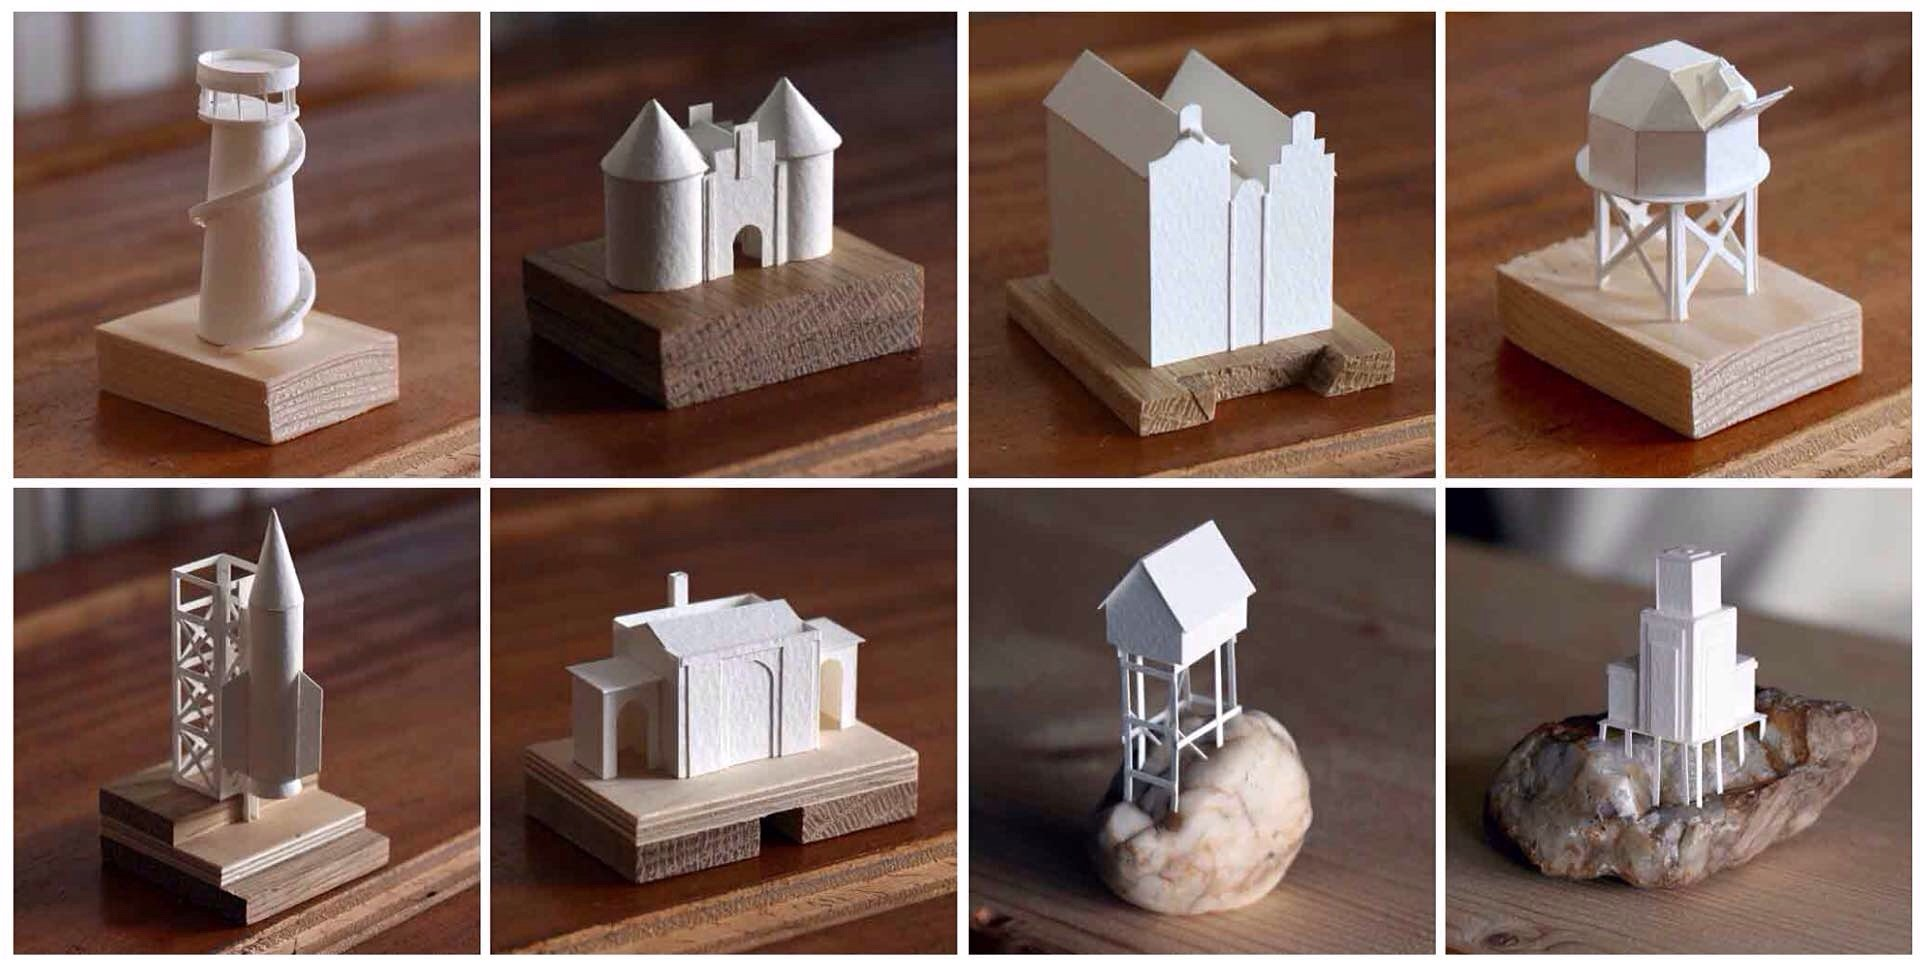 A small selection of Charles Young's paper building models.